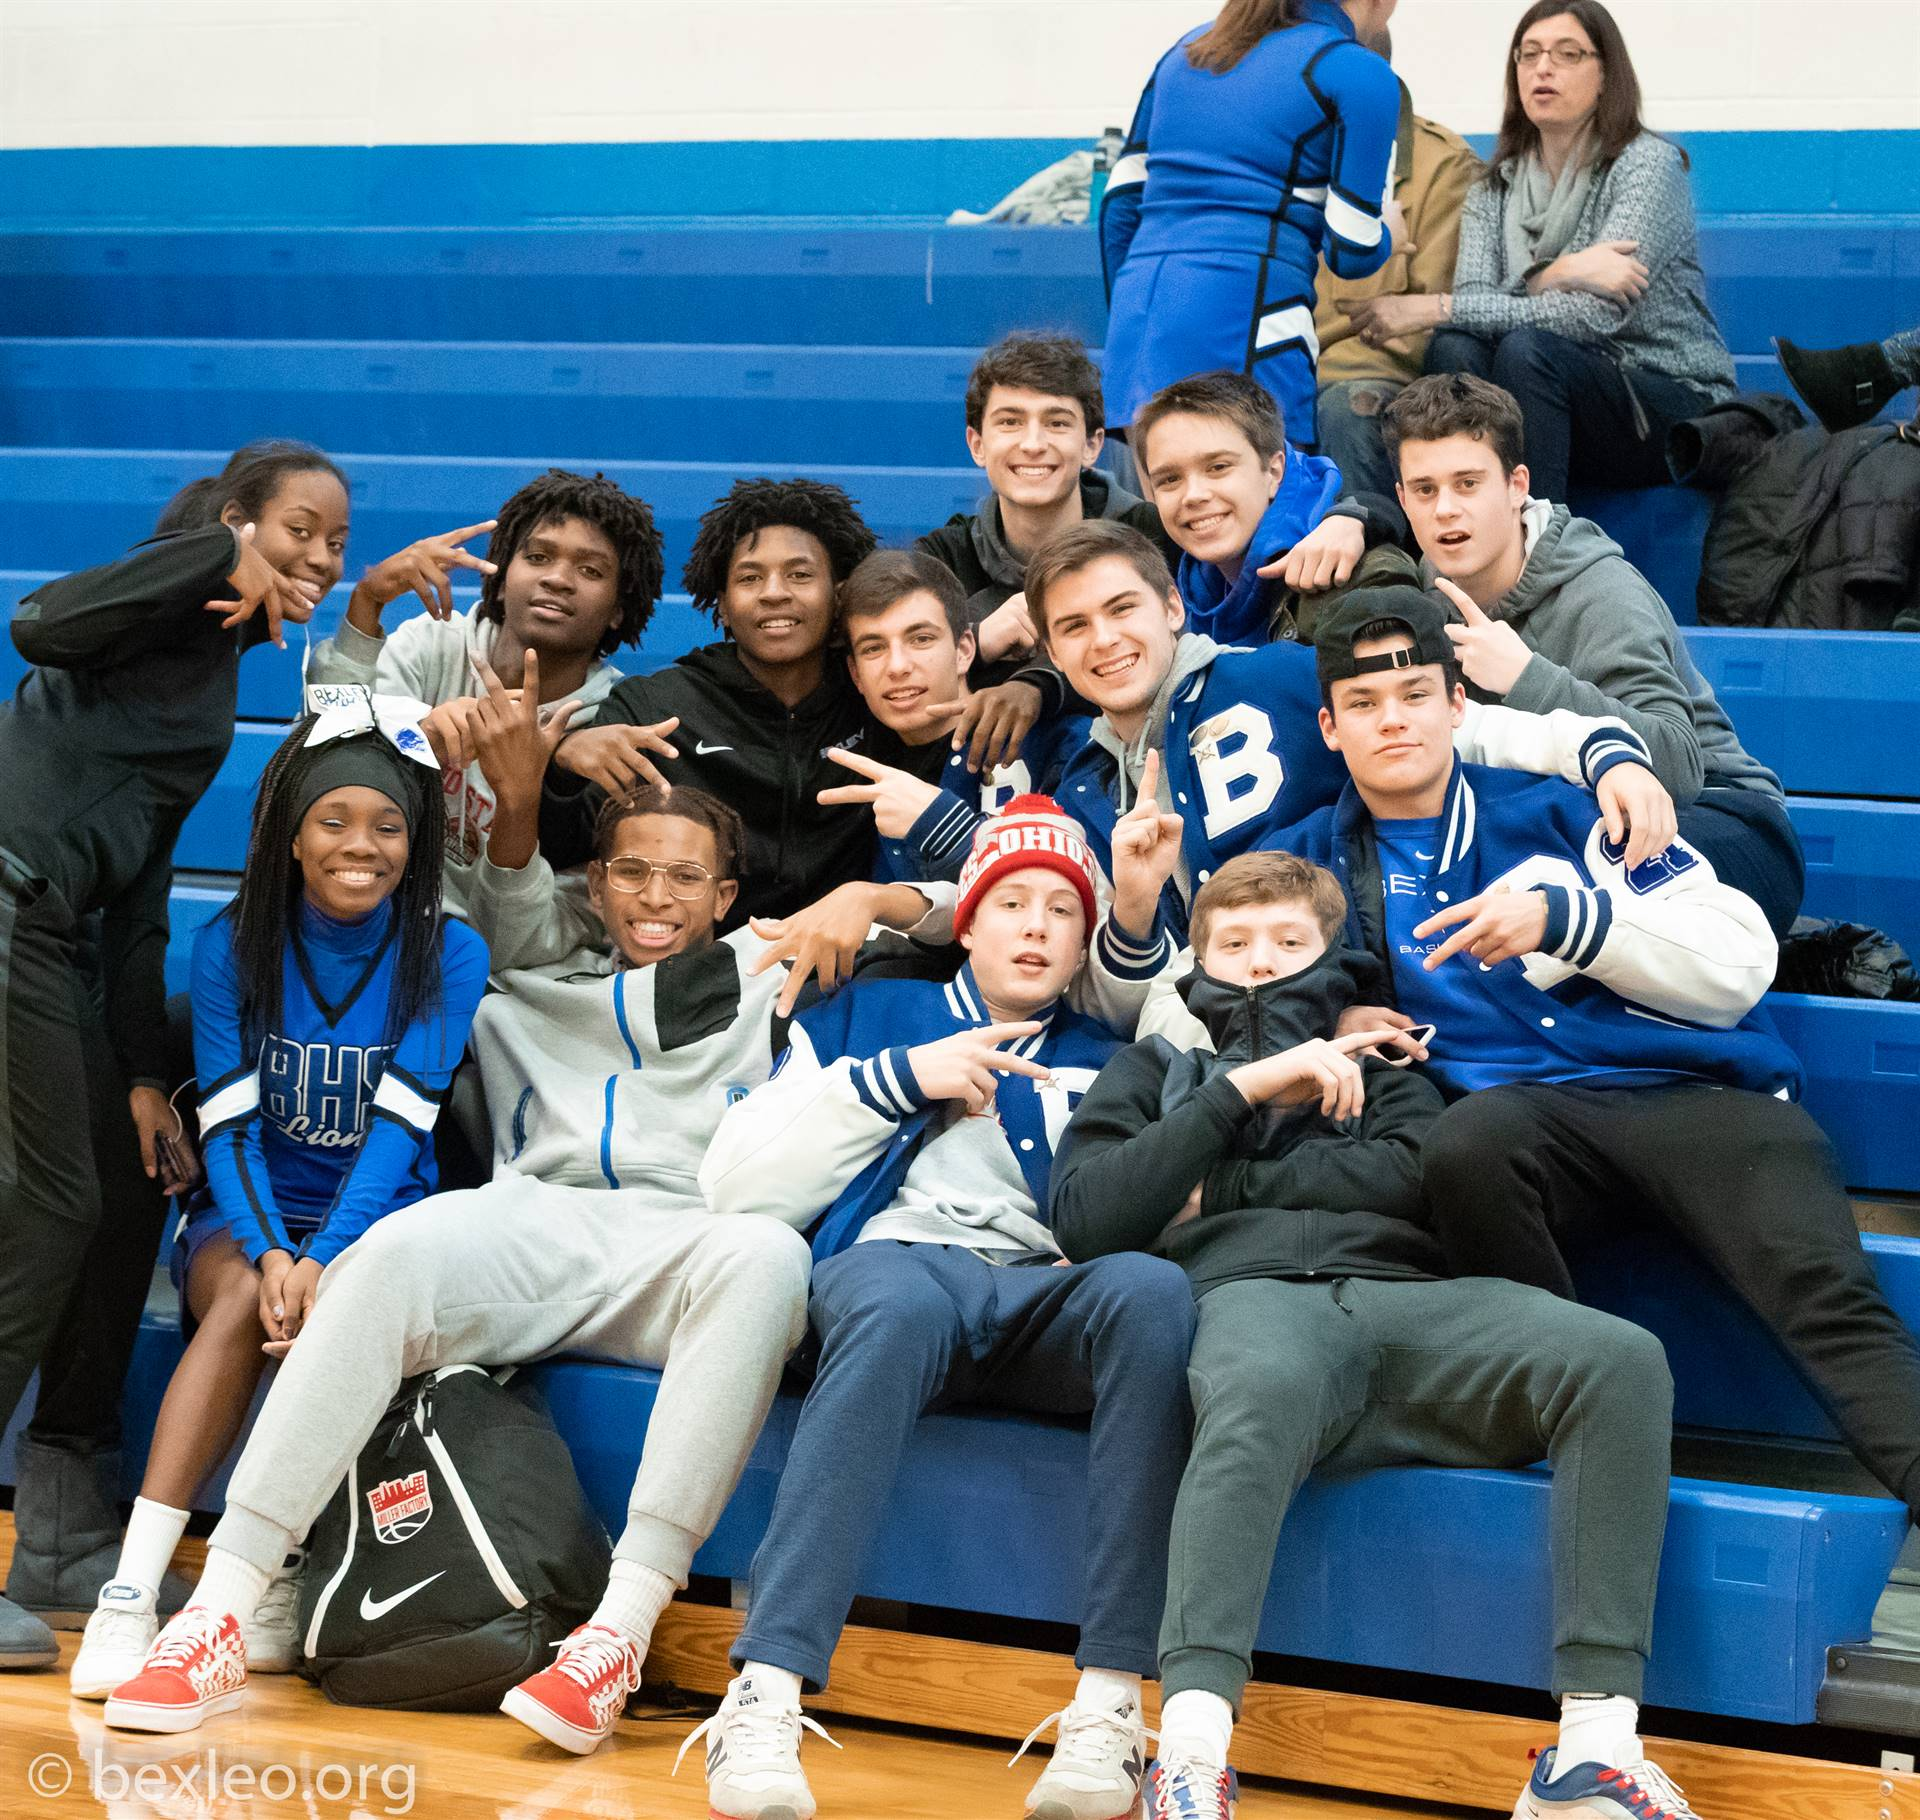 Fans cheering on the Girls Basketball team